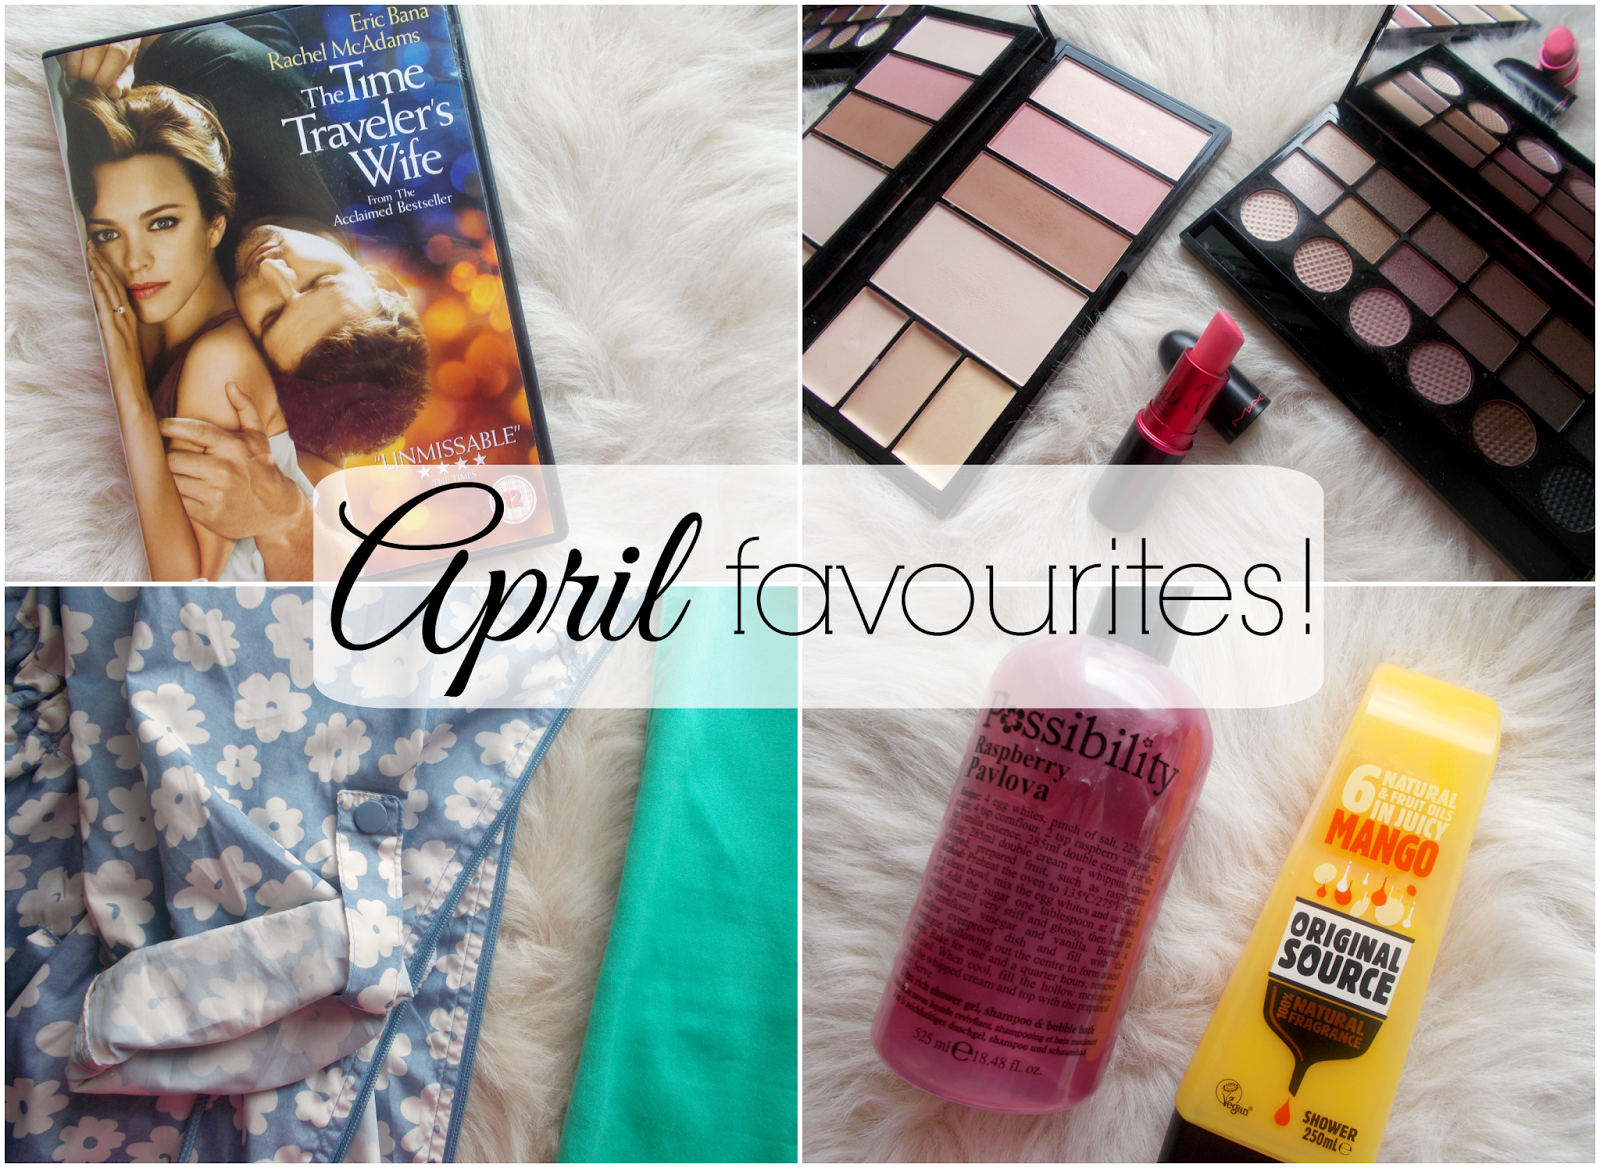 april favourites beauty fashion lifestyle makeup revolution mac viva glam nicki thrifting primark original source possibility bath the time travelers wife